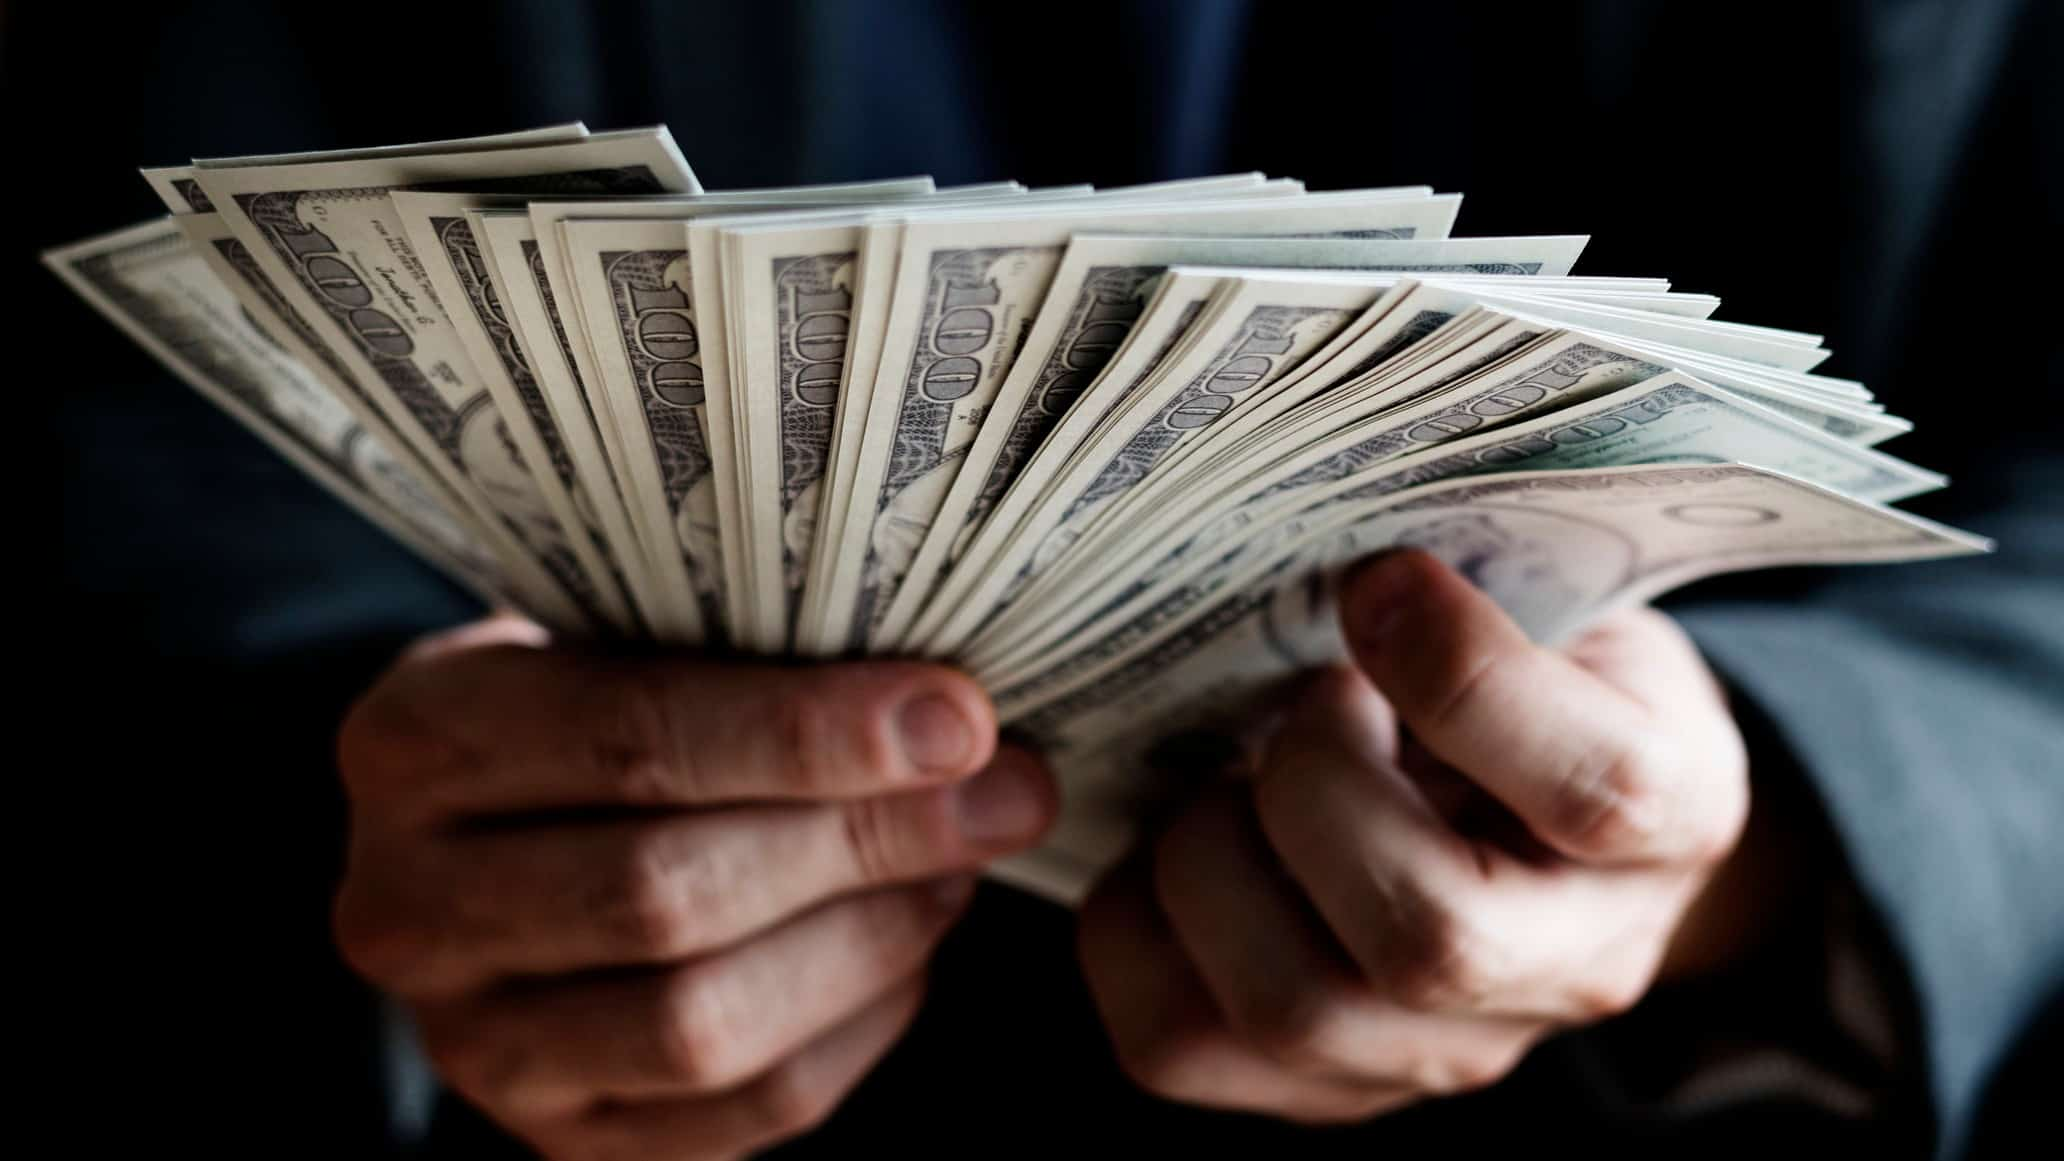 Close up of hands holding US bank notes